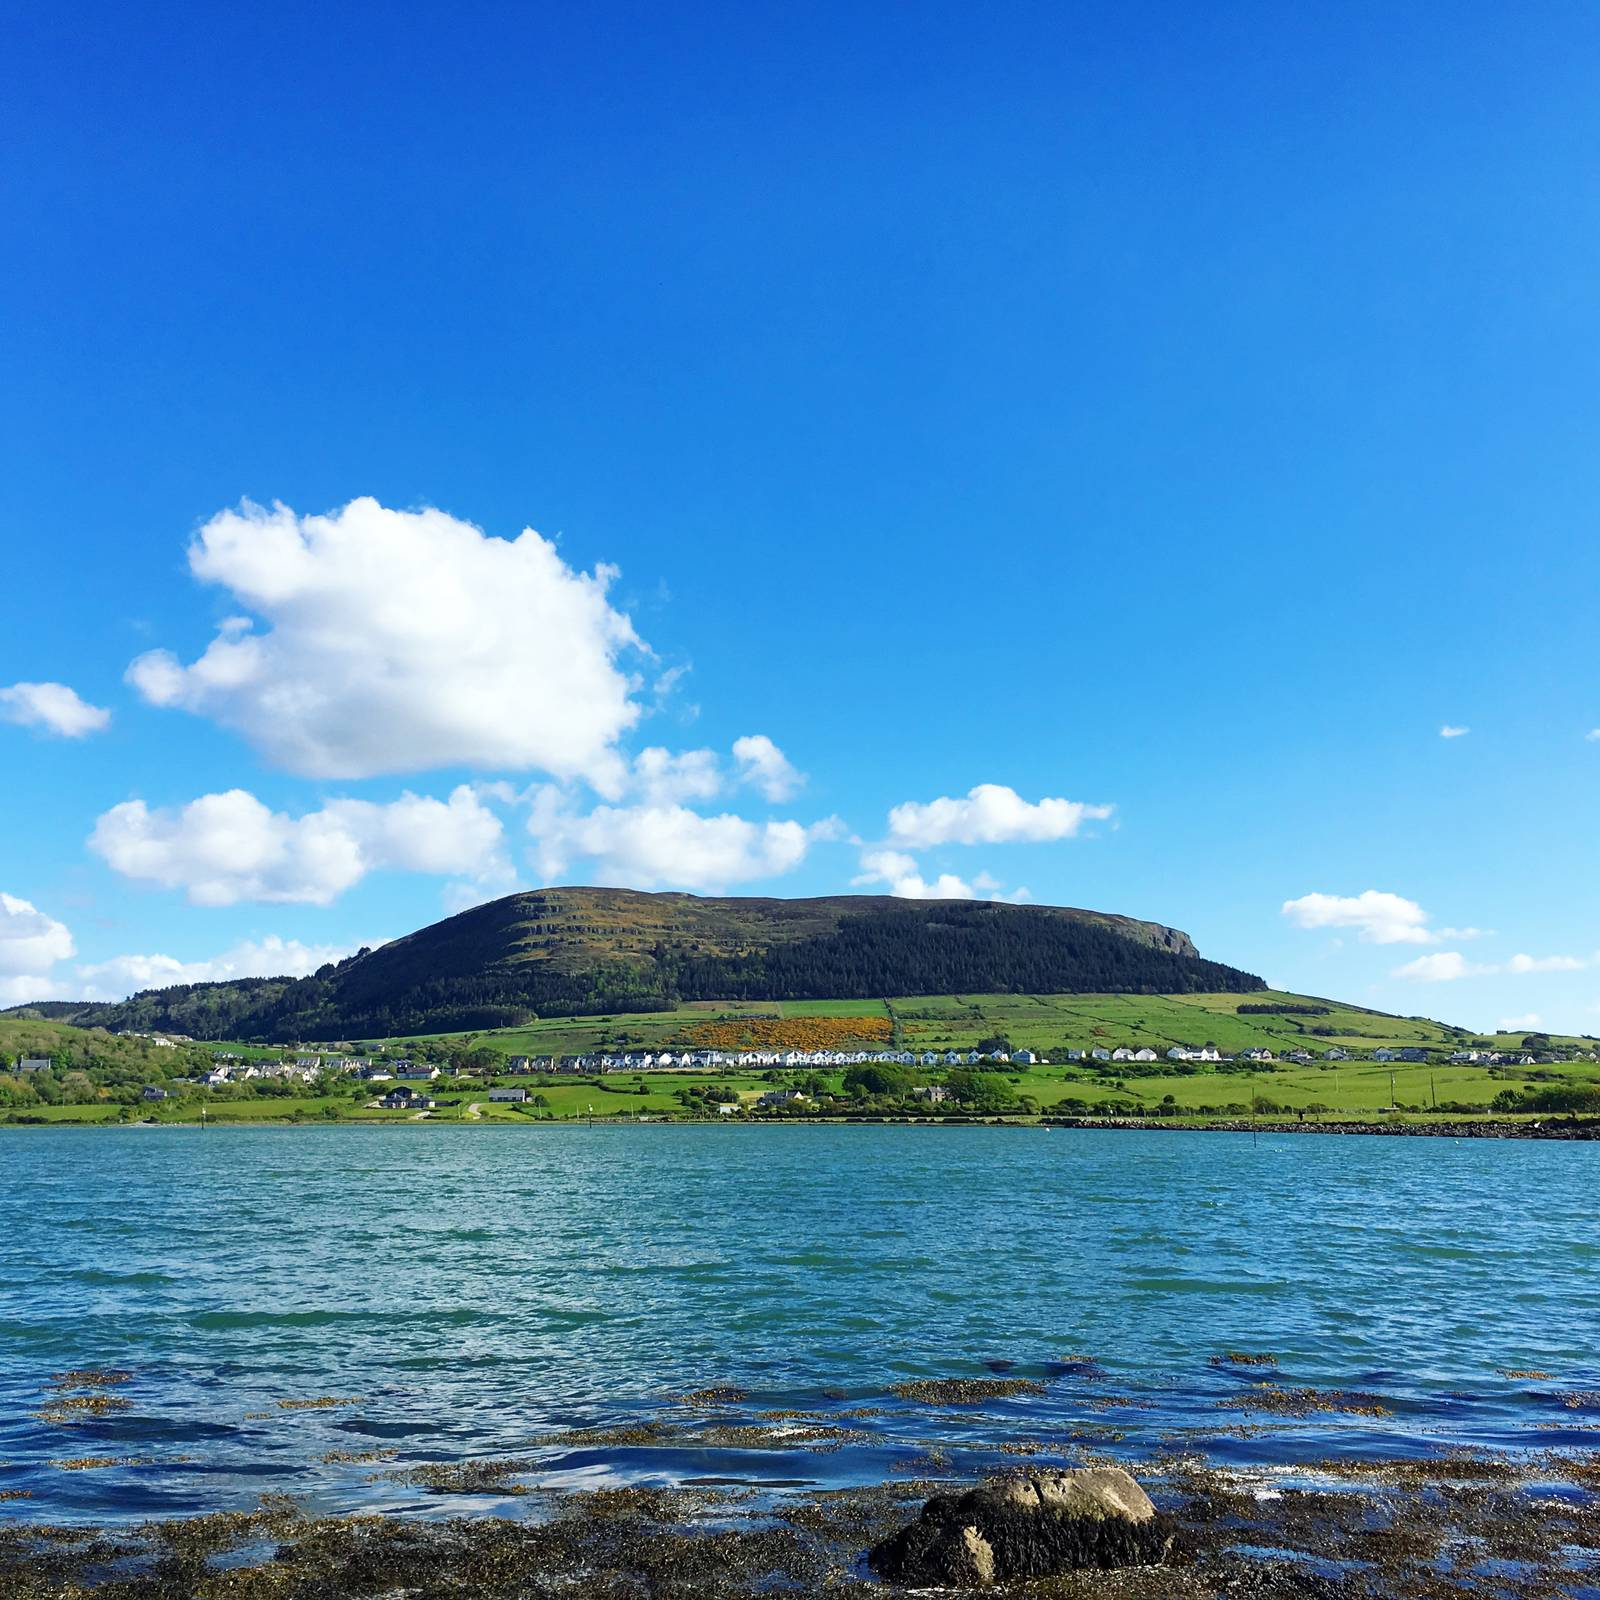 Knocknarea from the shore of Sligo Bay